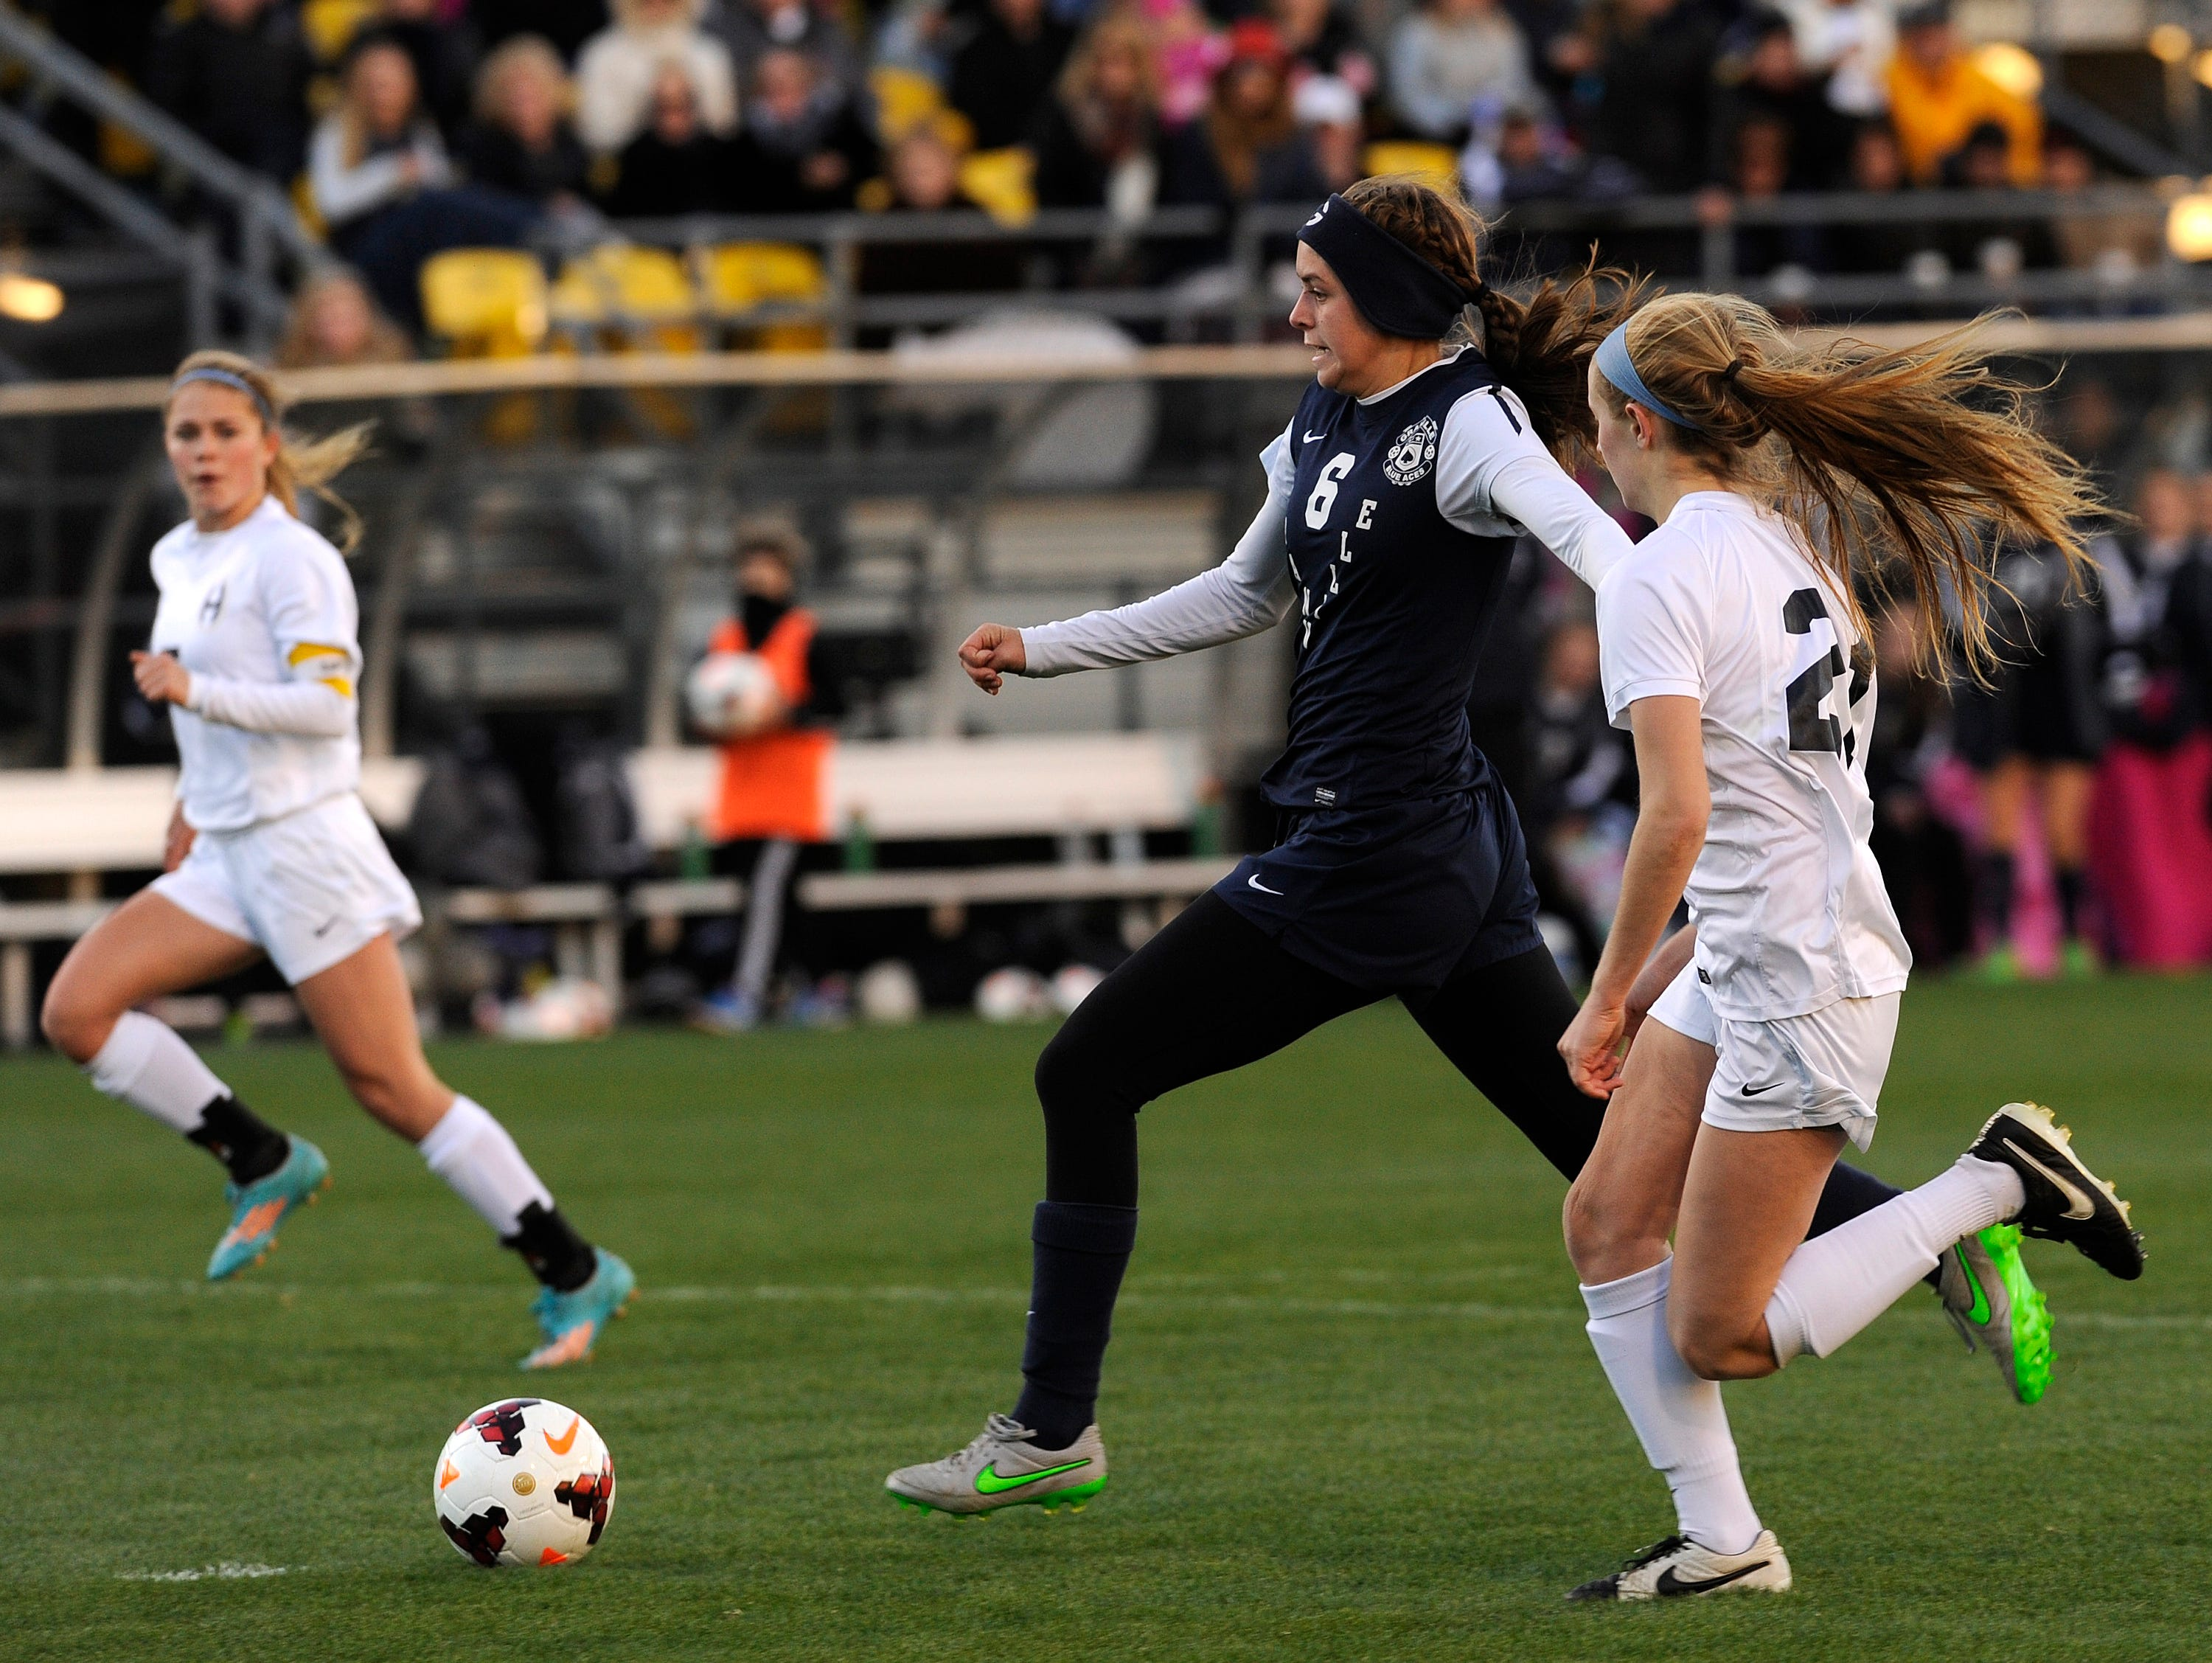 Granville senior forward Rose Sawyers outruns Akron Hoban defender Olivia Petit to take a shot on goal. Sawyers scored the Blue Aces lone goal in the first half of the state final game. The Blue Aces fell 2-1 in overtime in the state final on Friday, Nov. 13, 2015, at Mapfre Stadium in Columbus.